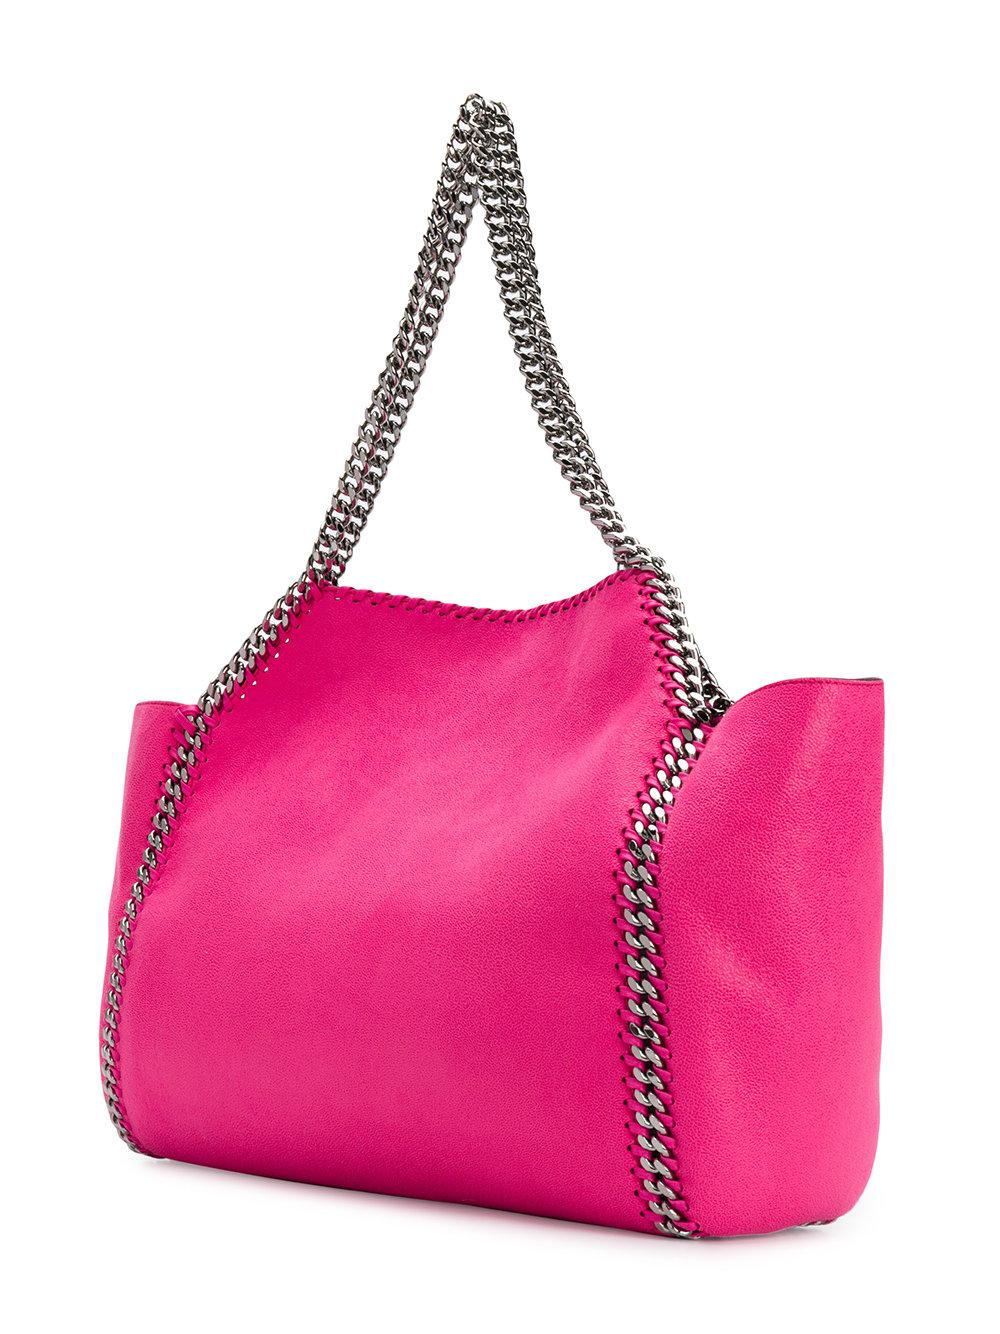 Stella McCartney Leather Reversible Falabella Tote Bag in Pink & Purple (Pink)